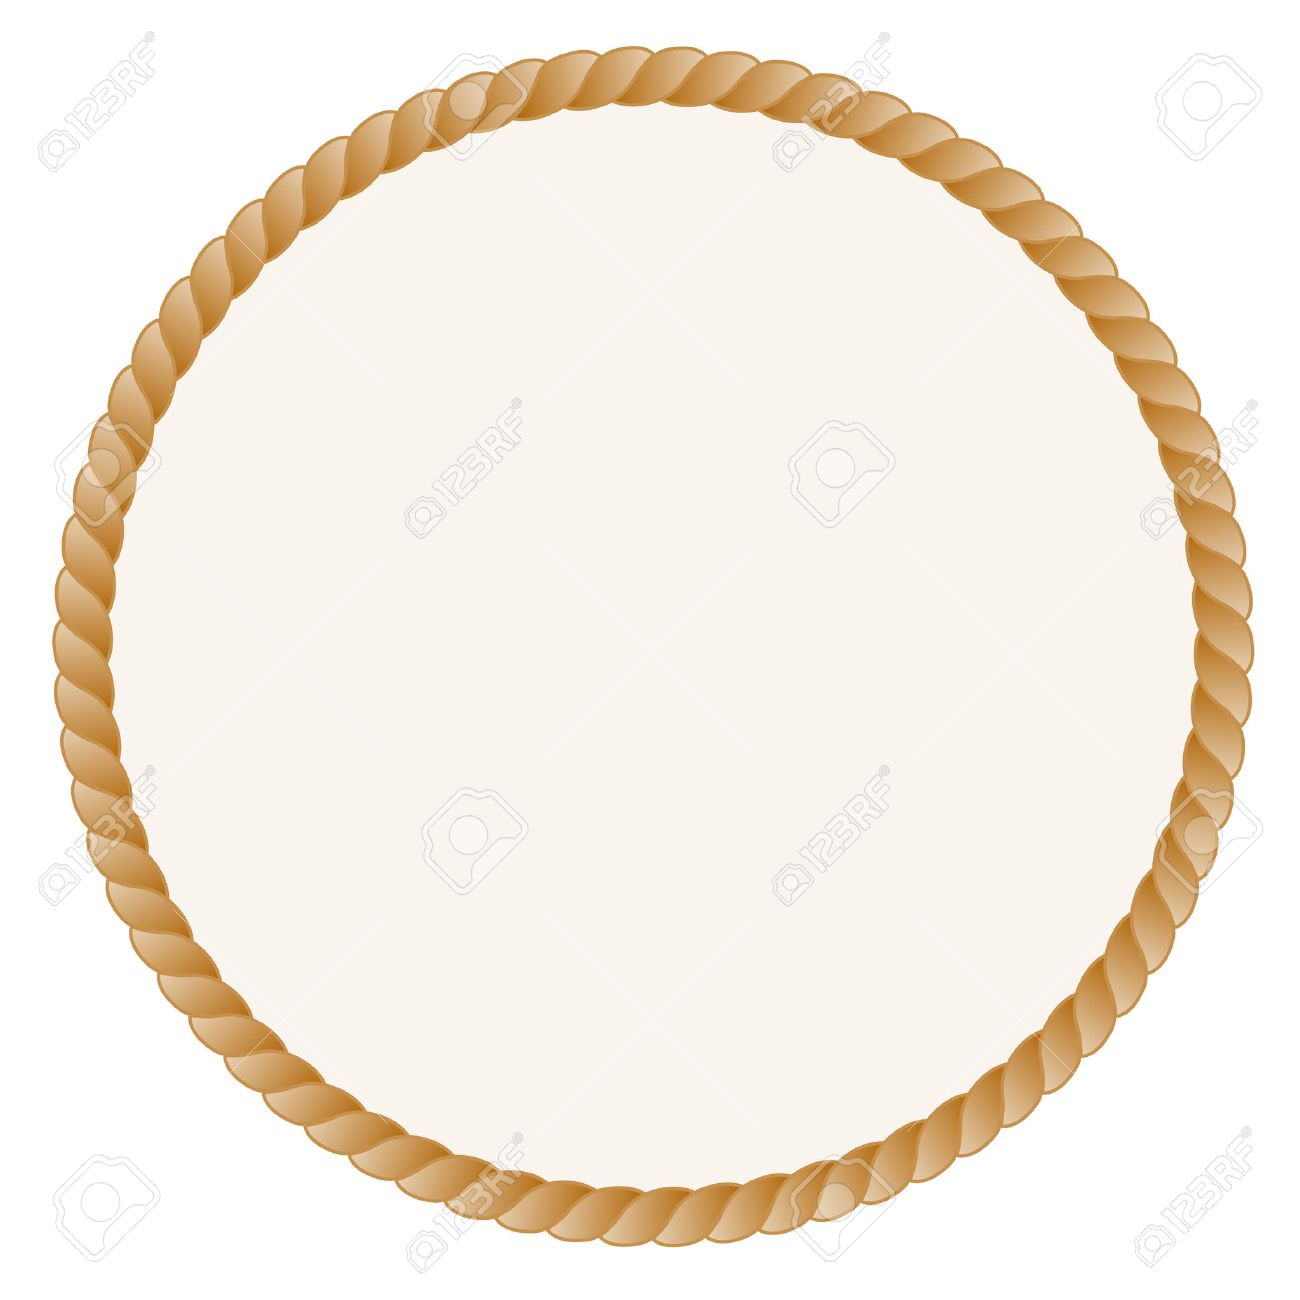 rope frame circle shaped rope frame border isolated on white background